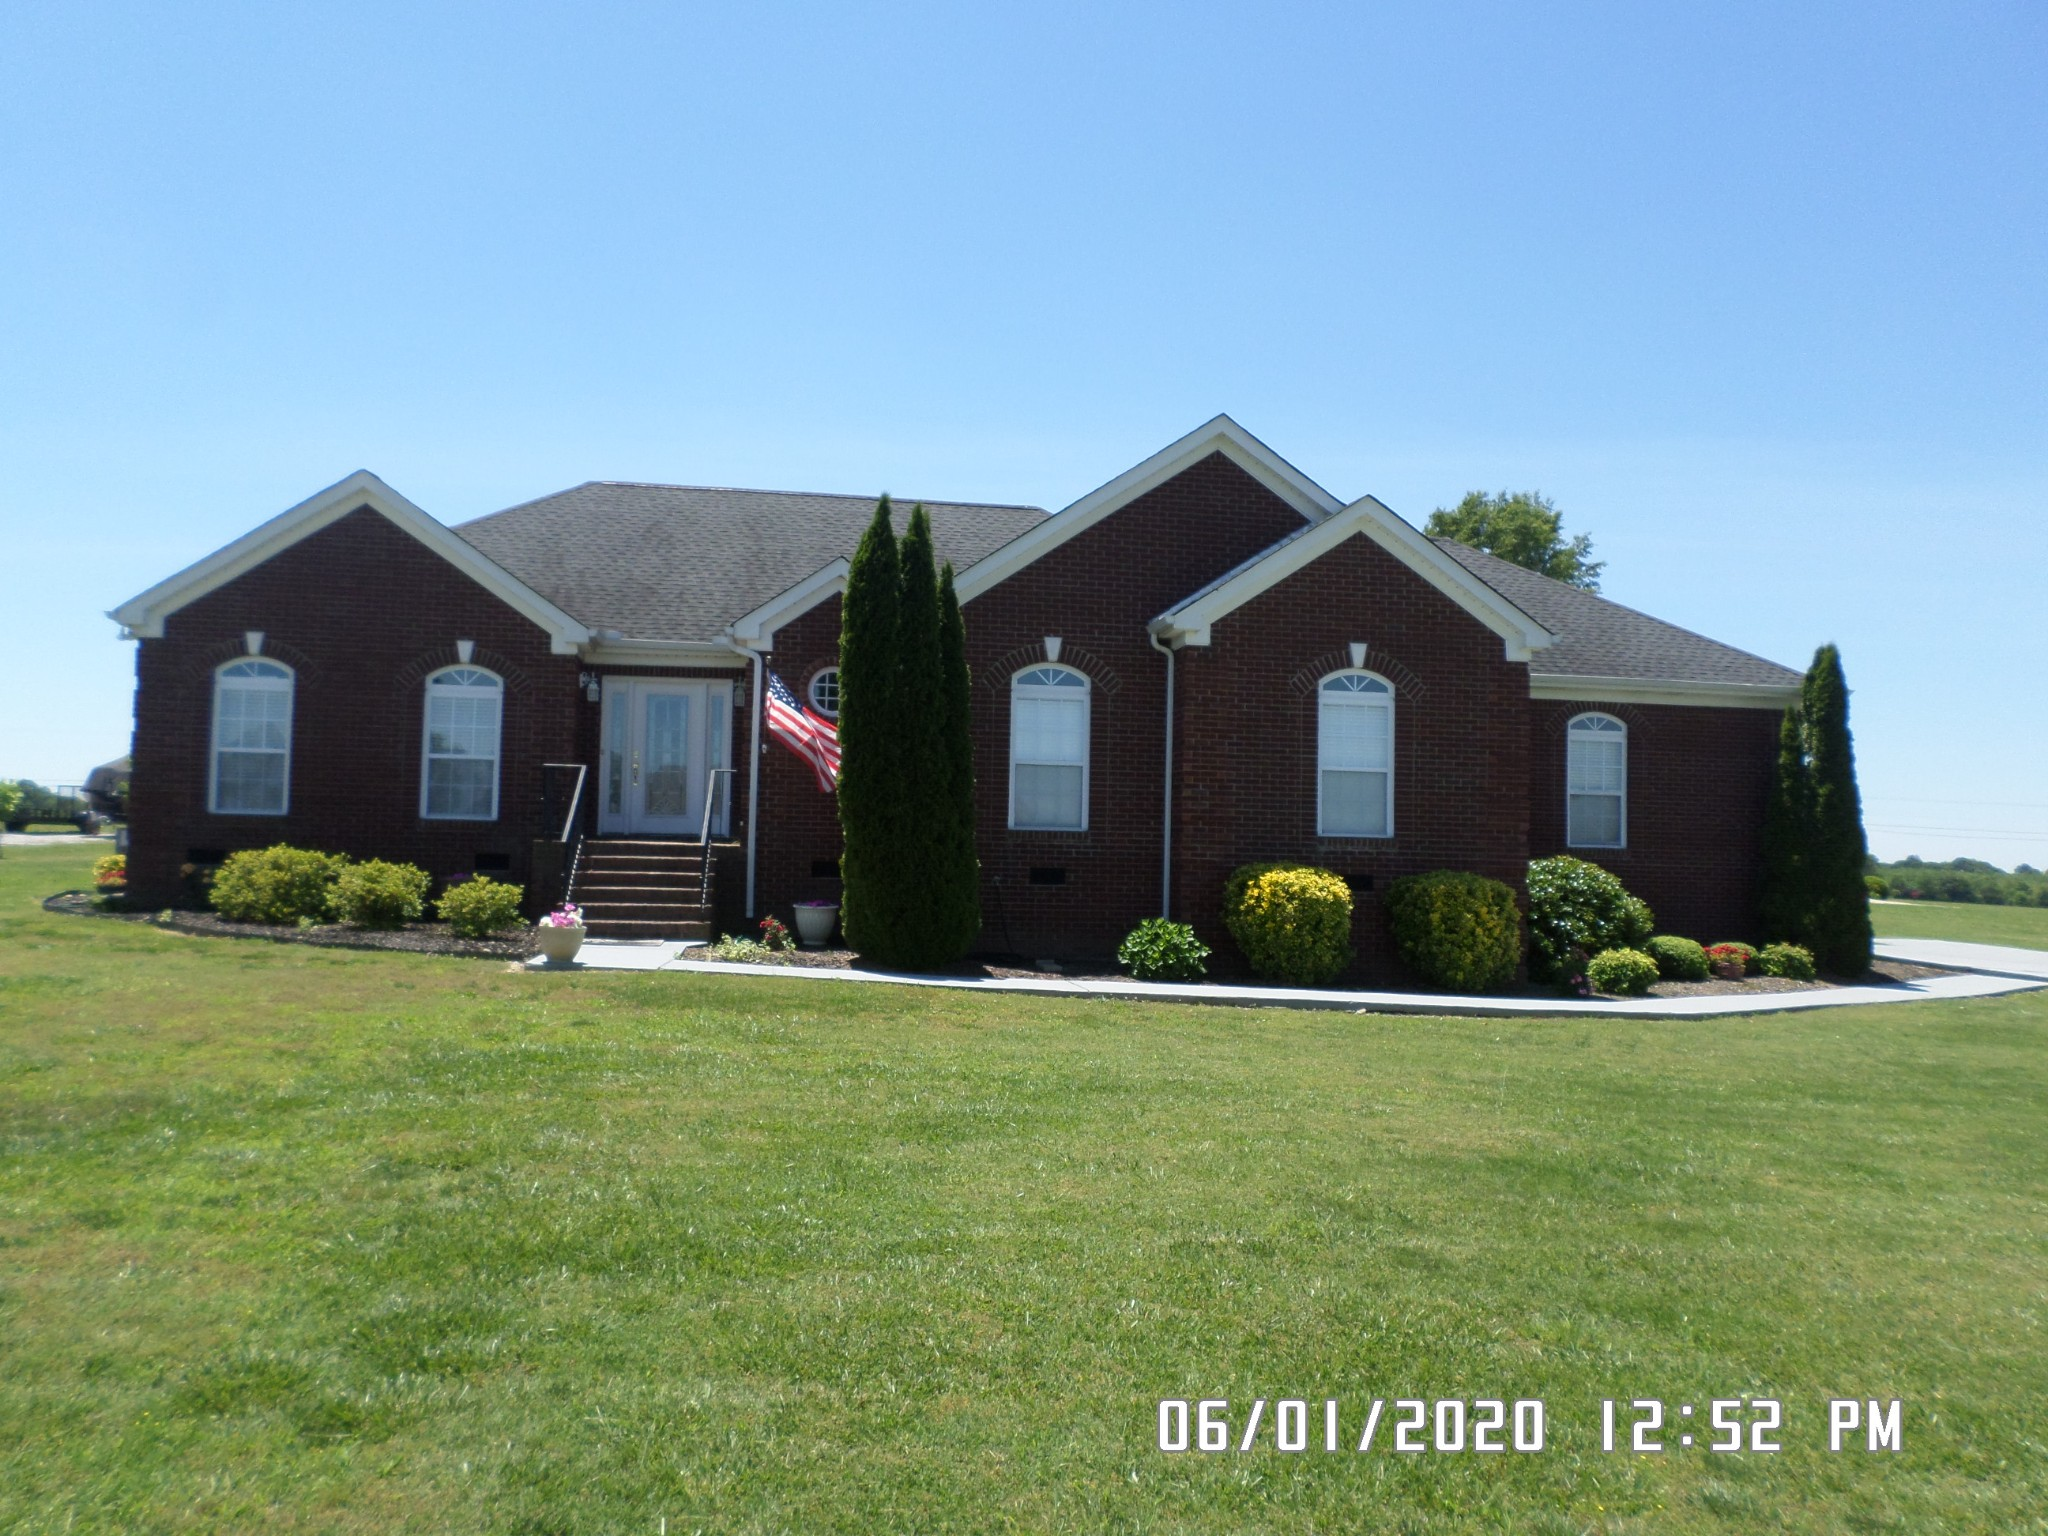 46 Jon Frank Dr Property Photo - Mount Pleasant, TN real estate listing